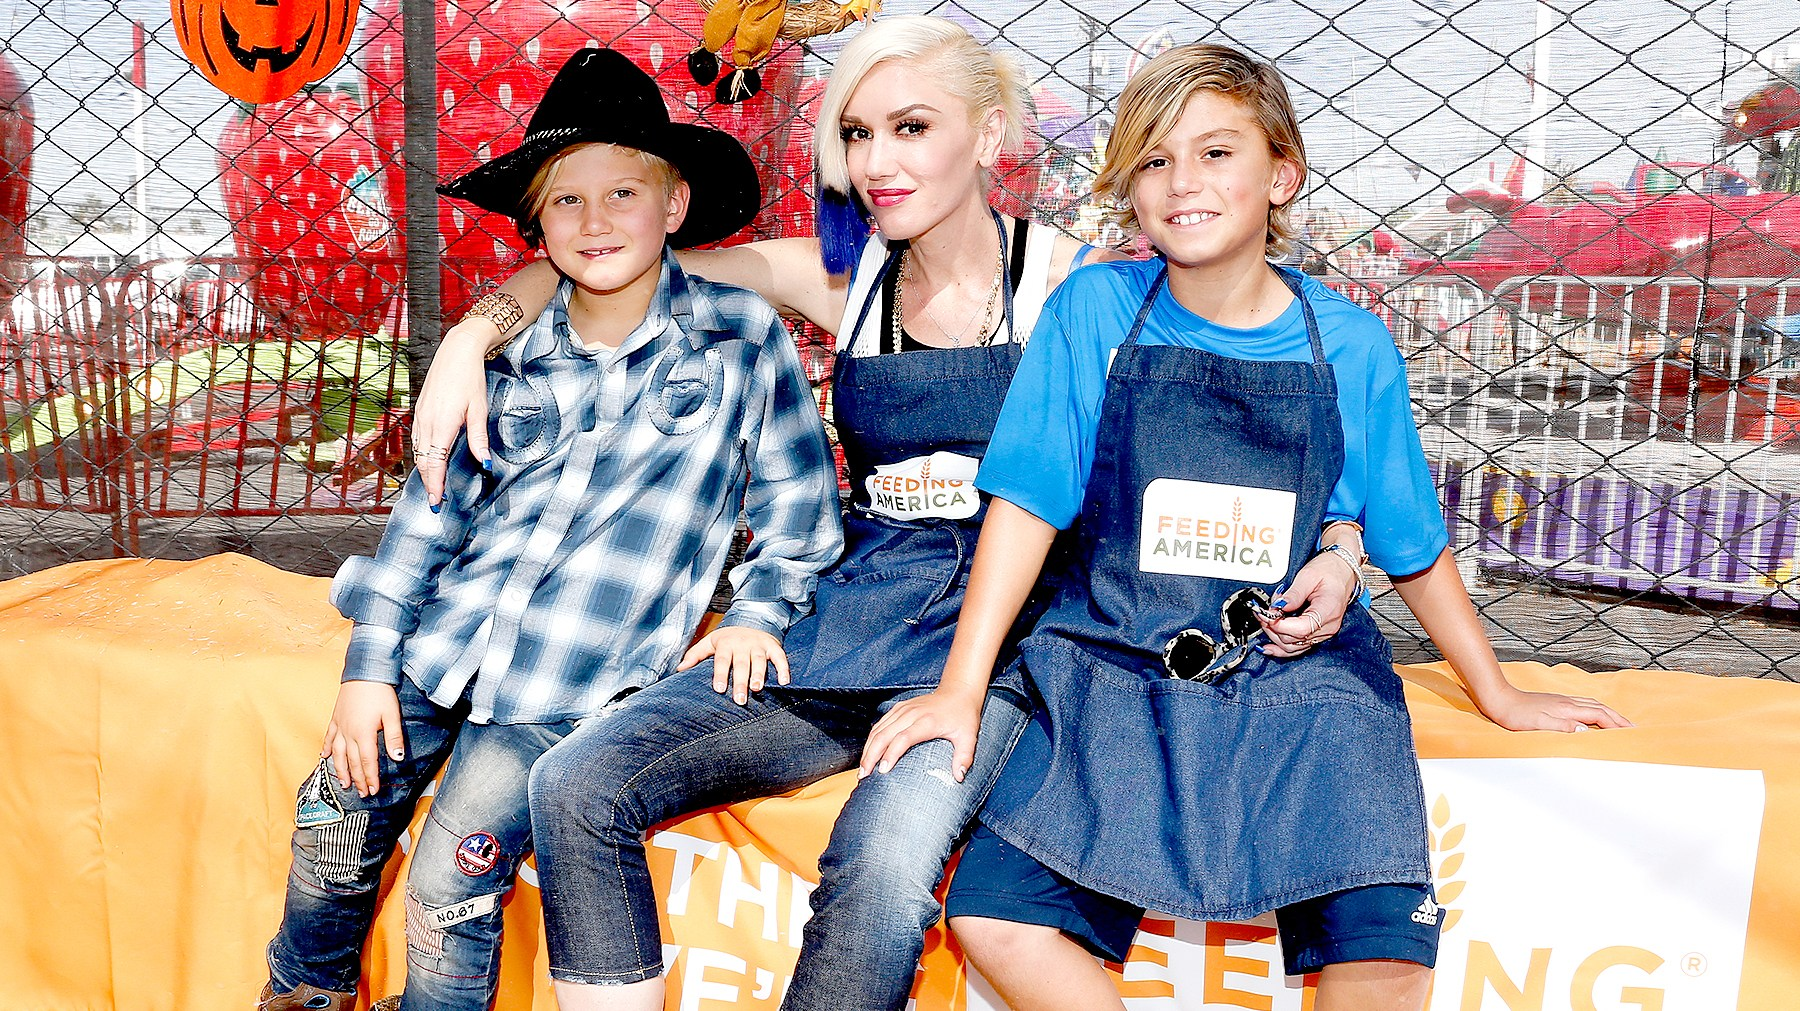 Zuma Rossdale, Gwen Stefani and Kingston Rossdale volunteer at the Feeding America Holiday Harvest event at Shawn's Pumpkin Patch in partnership with the LA Regional Food Bank, supported by Bank of America Charitable Foundation on October 24, 2015 in Culver City, California.